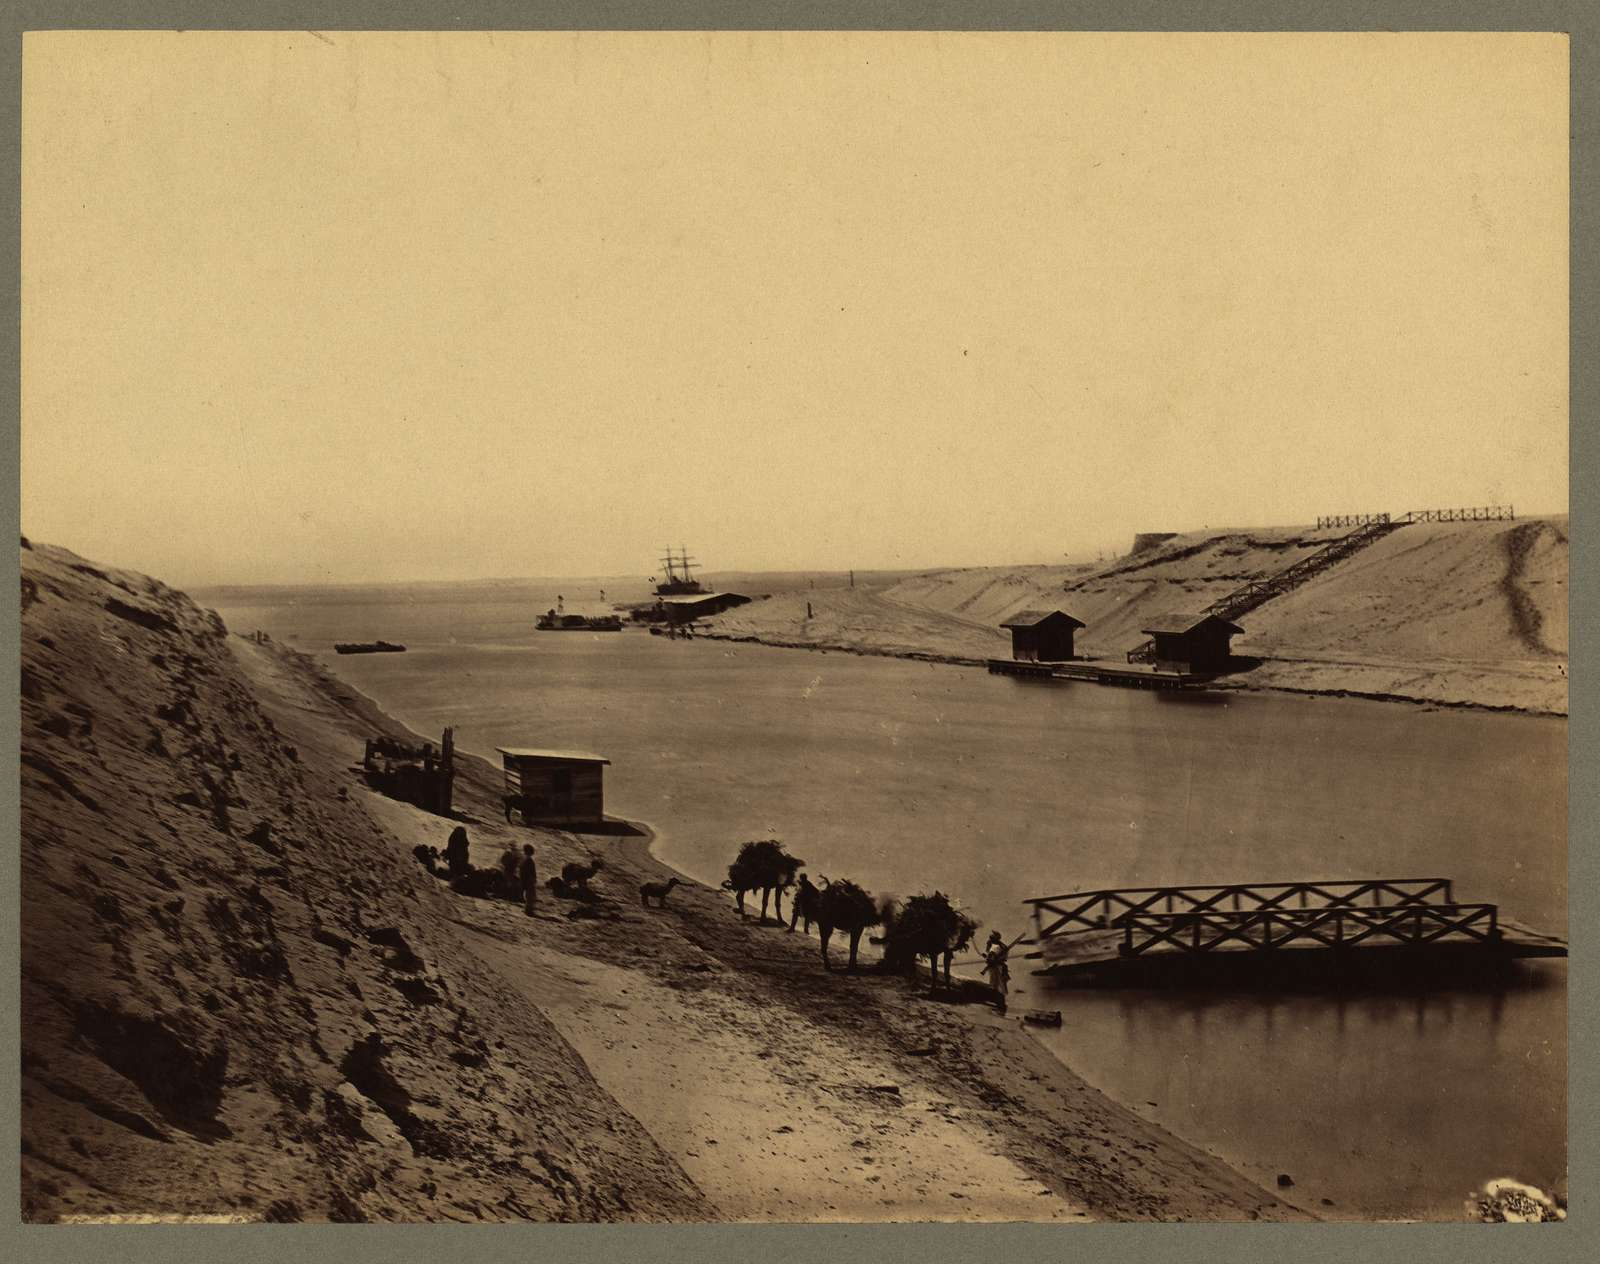 Egypt - Suez Canal - Lake Timsah, from opp. the chalet